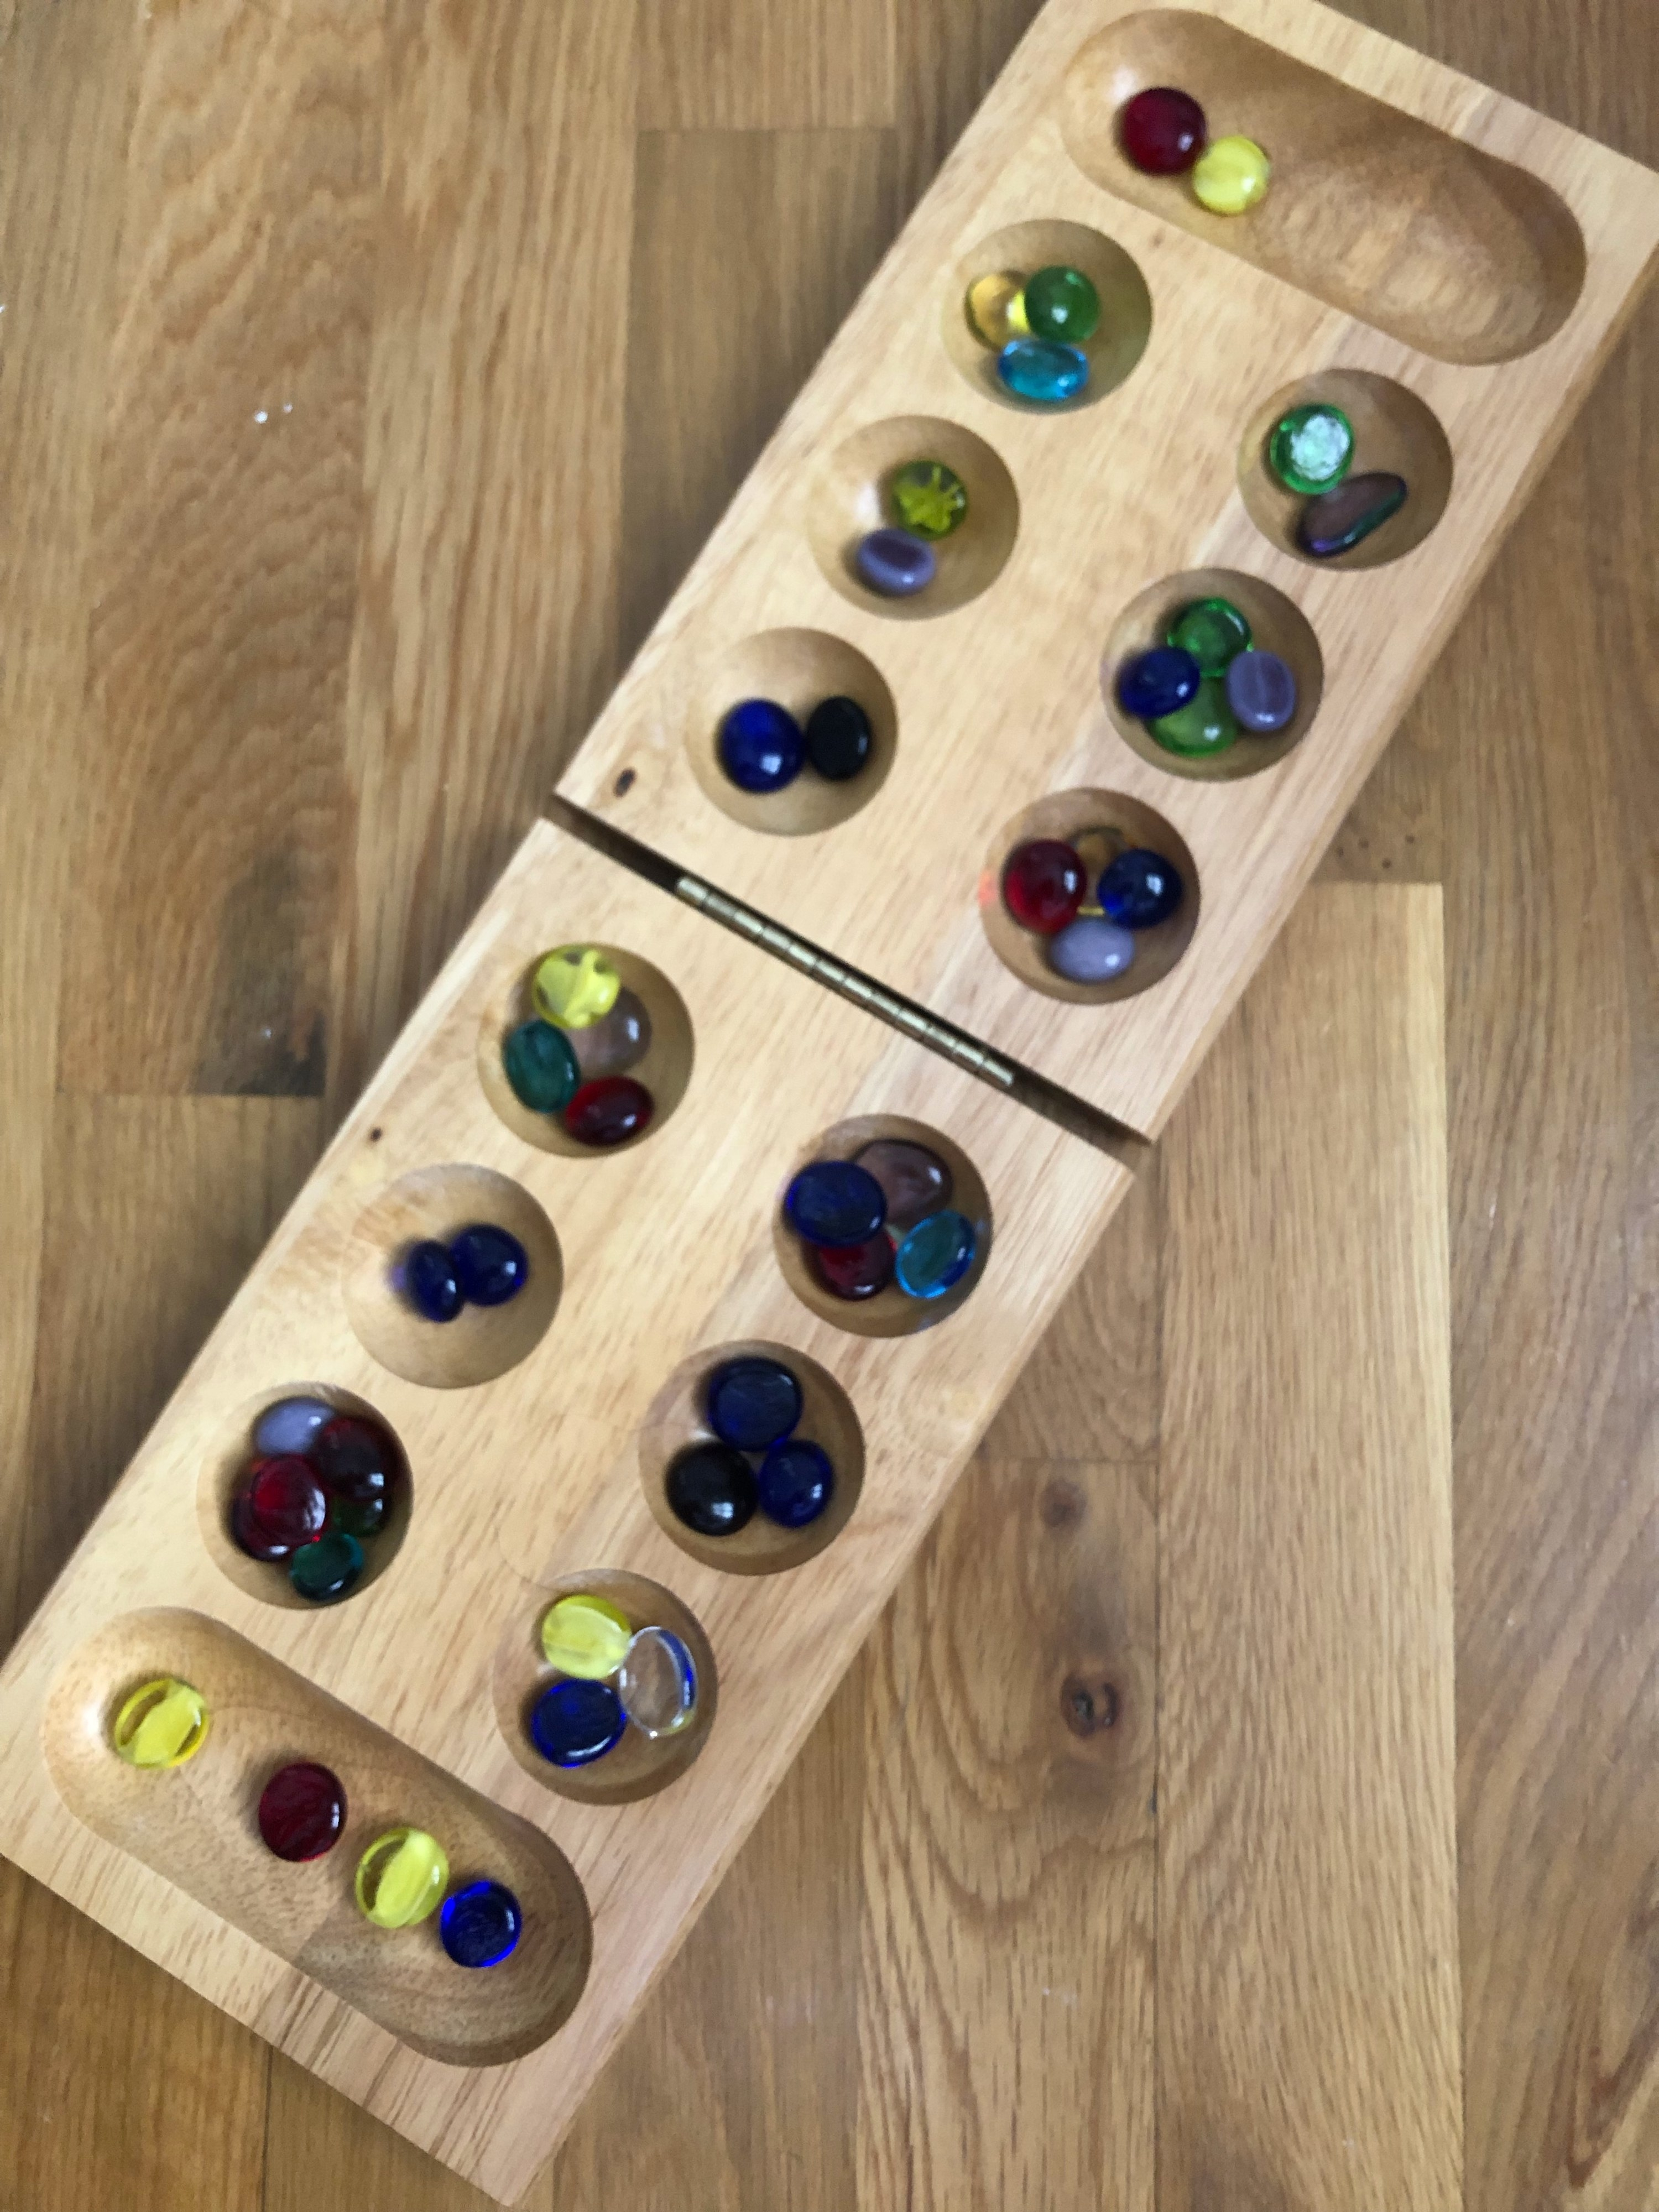 Mancala board filled with colorful marbles in every pocket